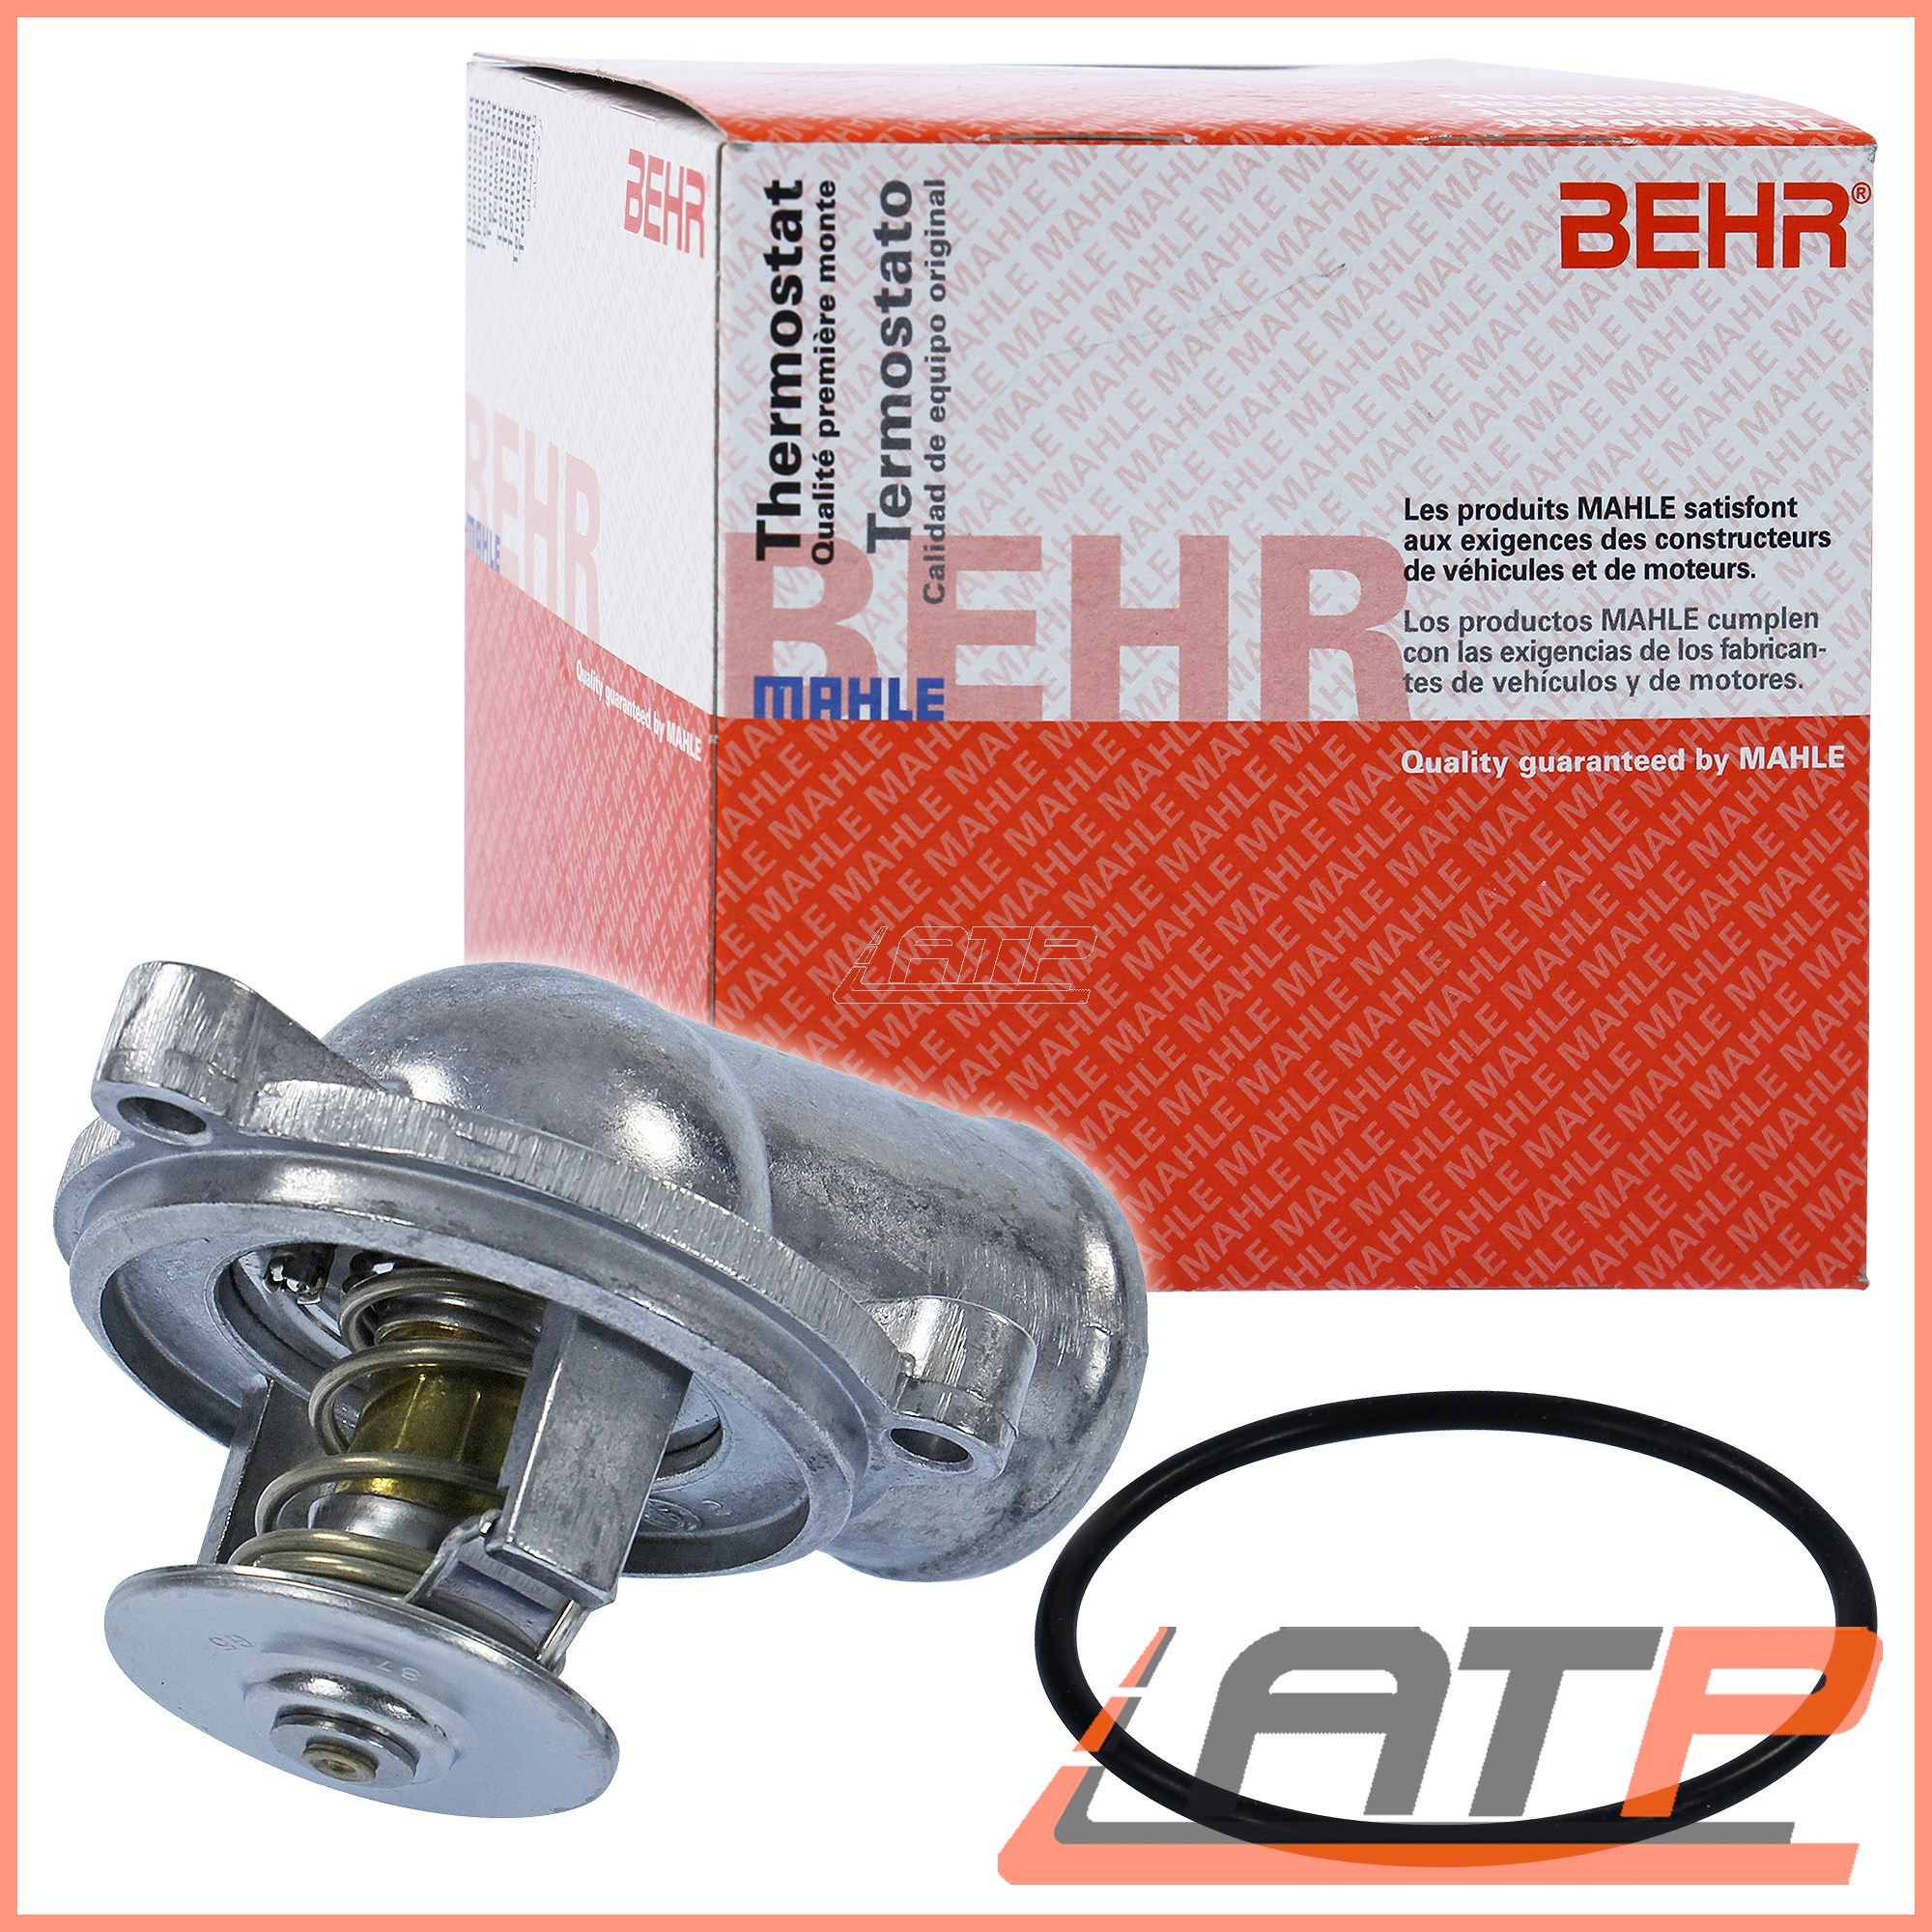 BEHR/MAHLE THERMOSTAT DAEWOO MUSSO 2 3 | eBay